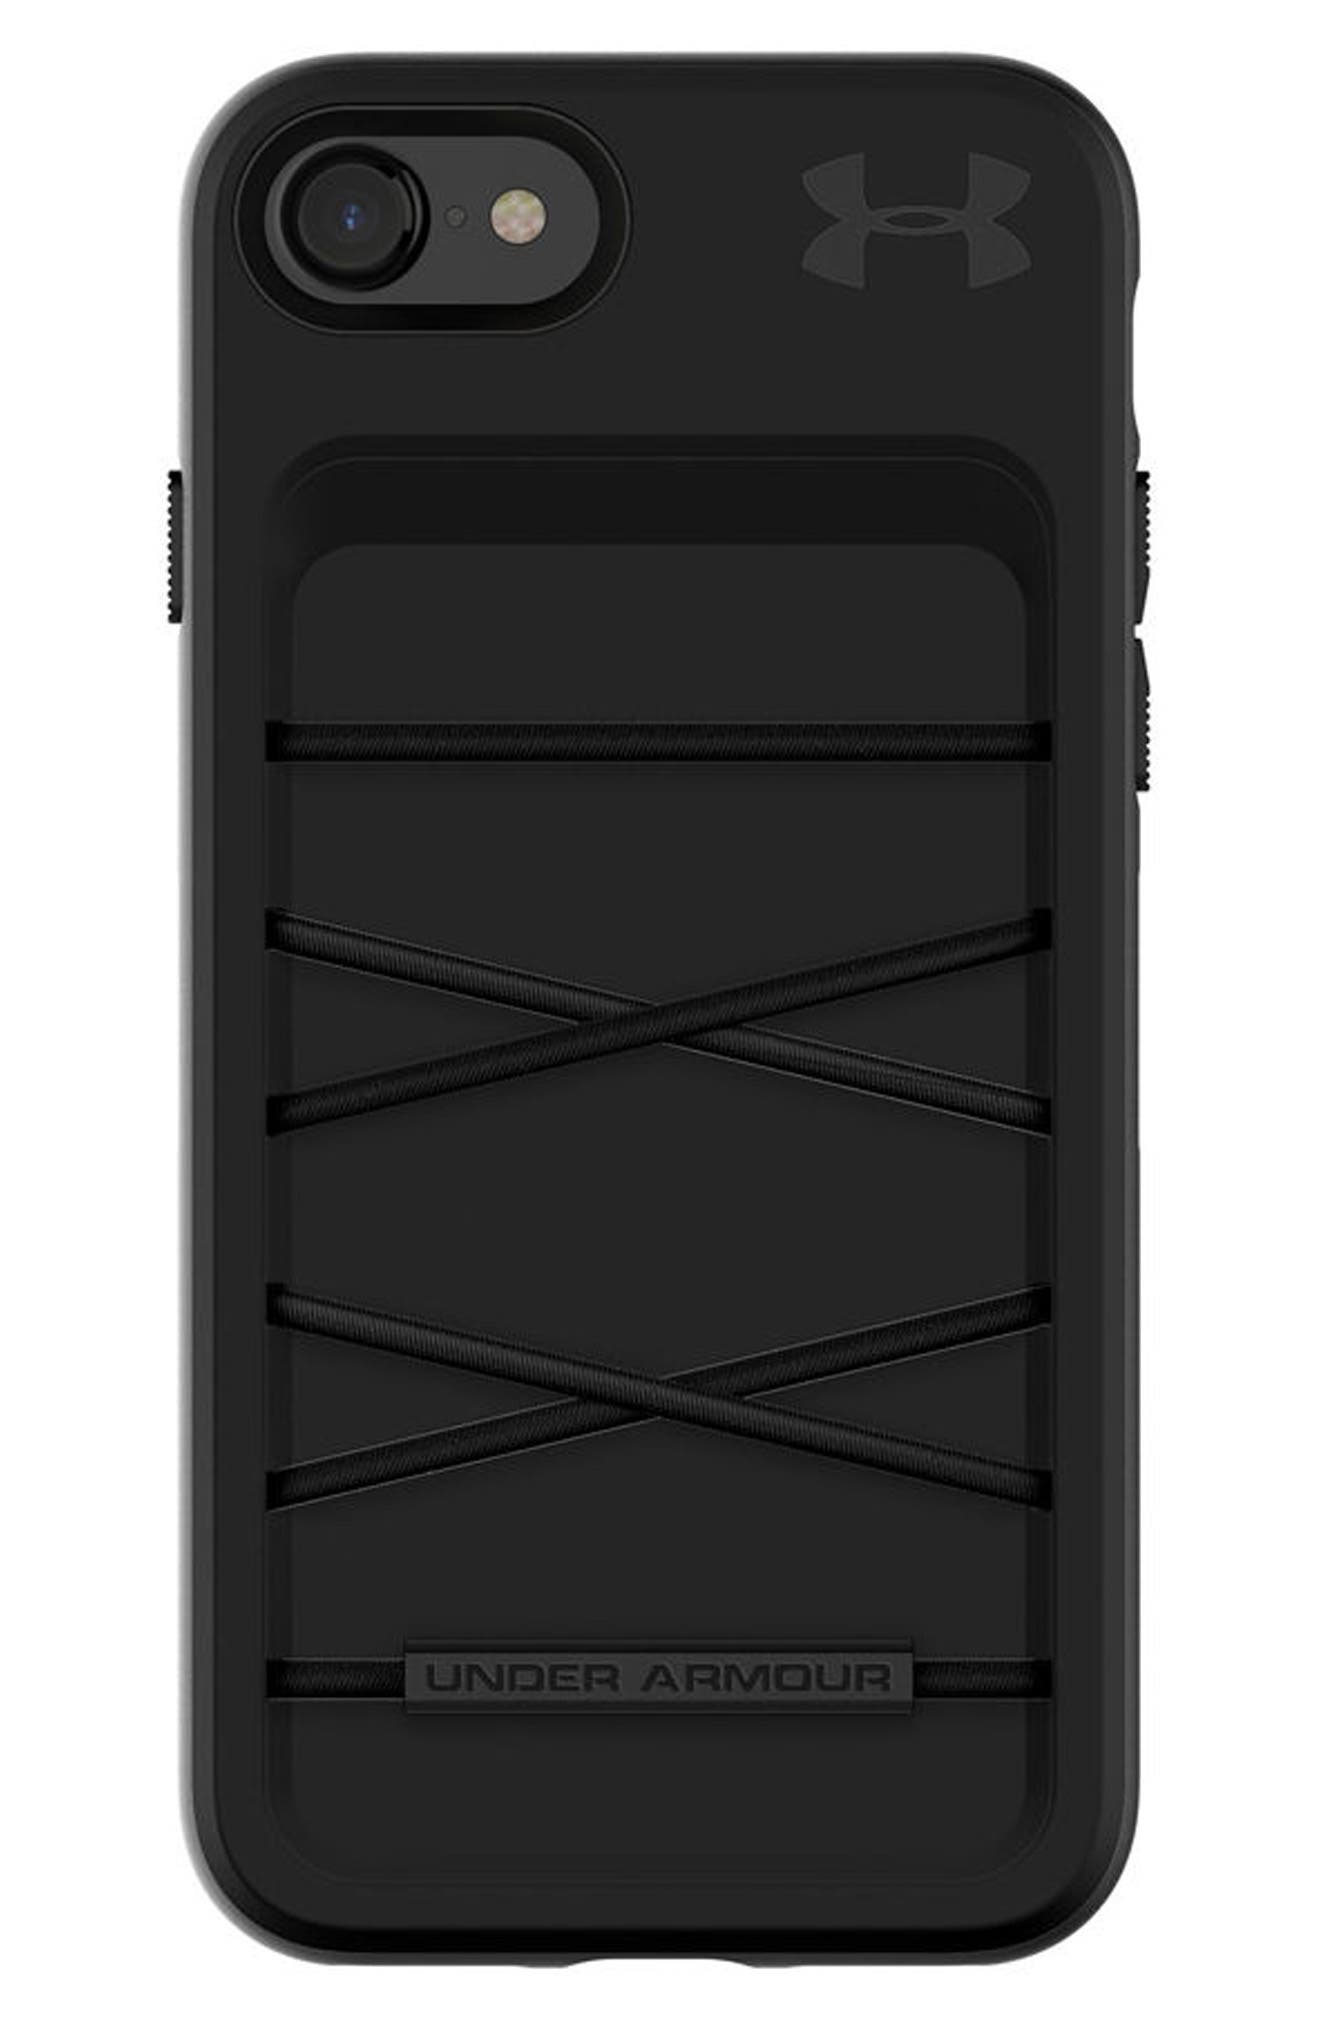 Protect Arsenal iPhone 7/8 Case,                         Main,                         color, Black/ Black